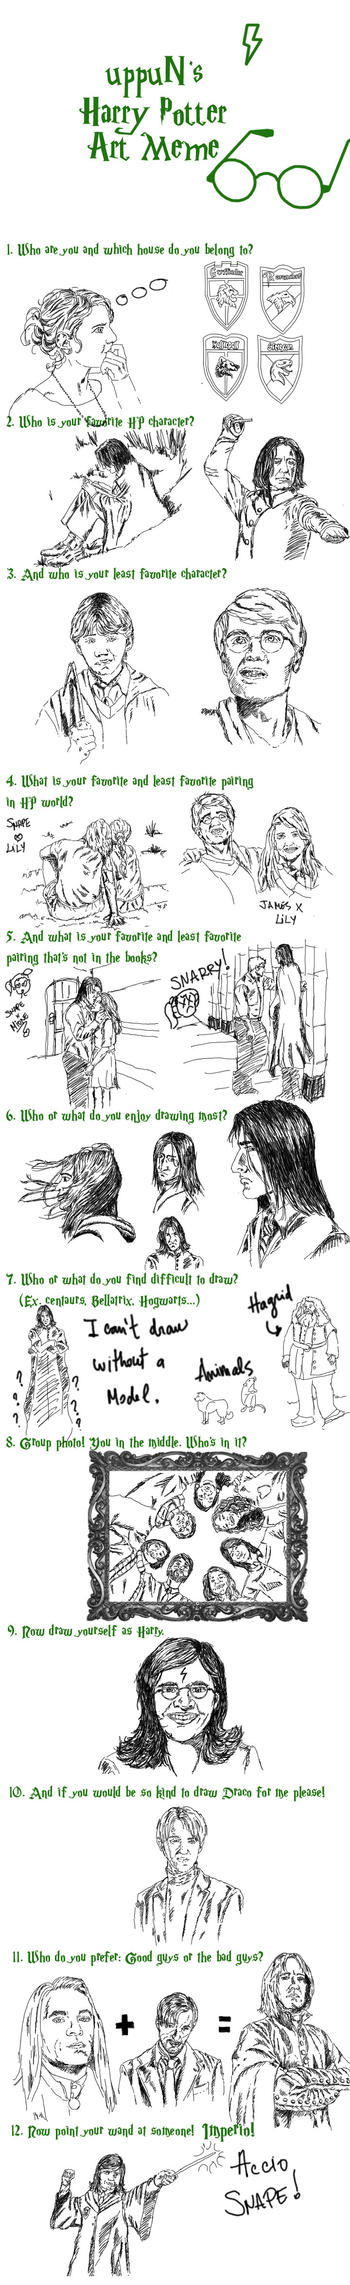 HP_ART_MEME_By_SHEY by Leiloka27